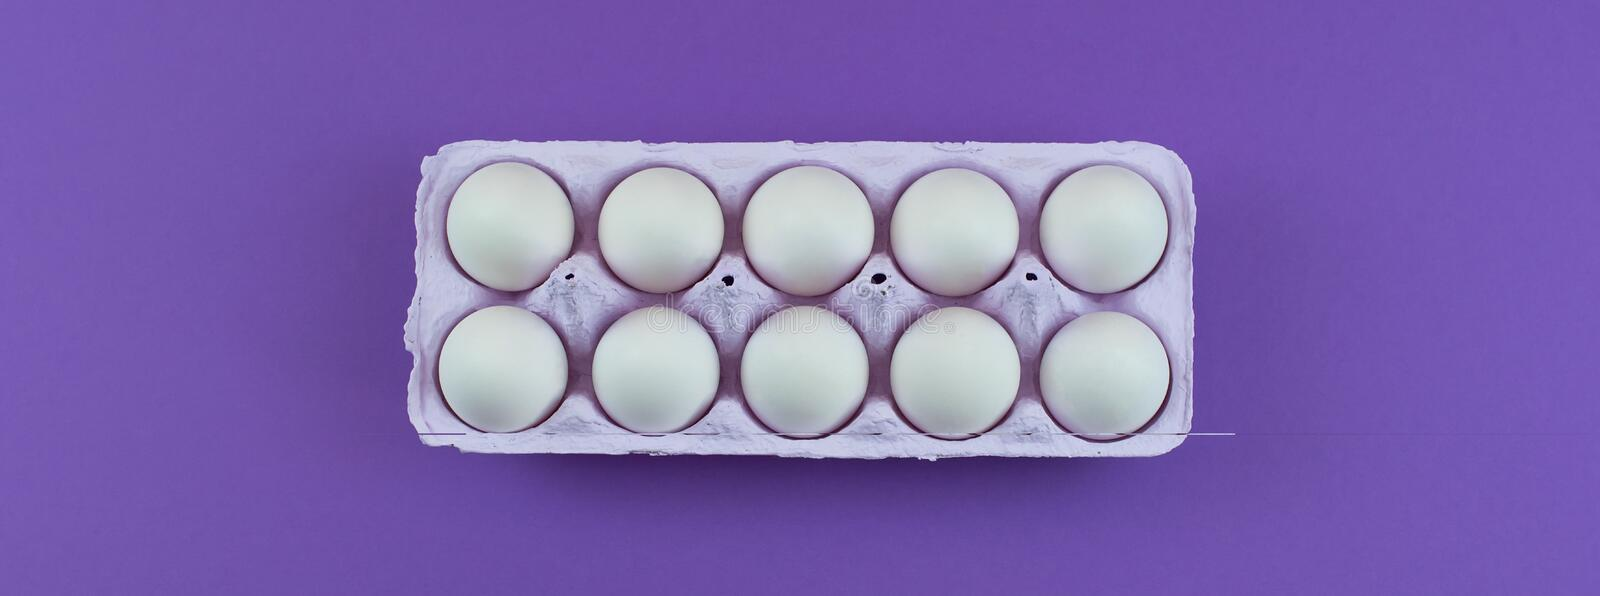 Banner Rectangular box with chicken eggs. royalty free stock images